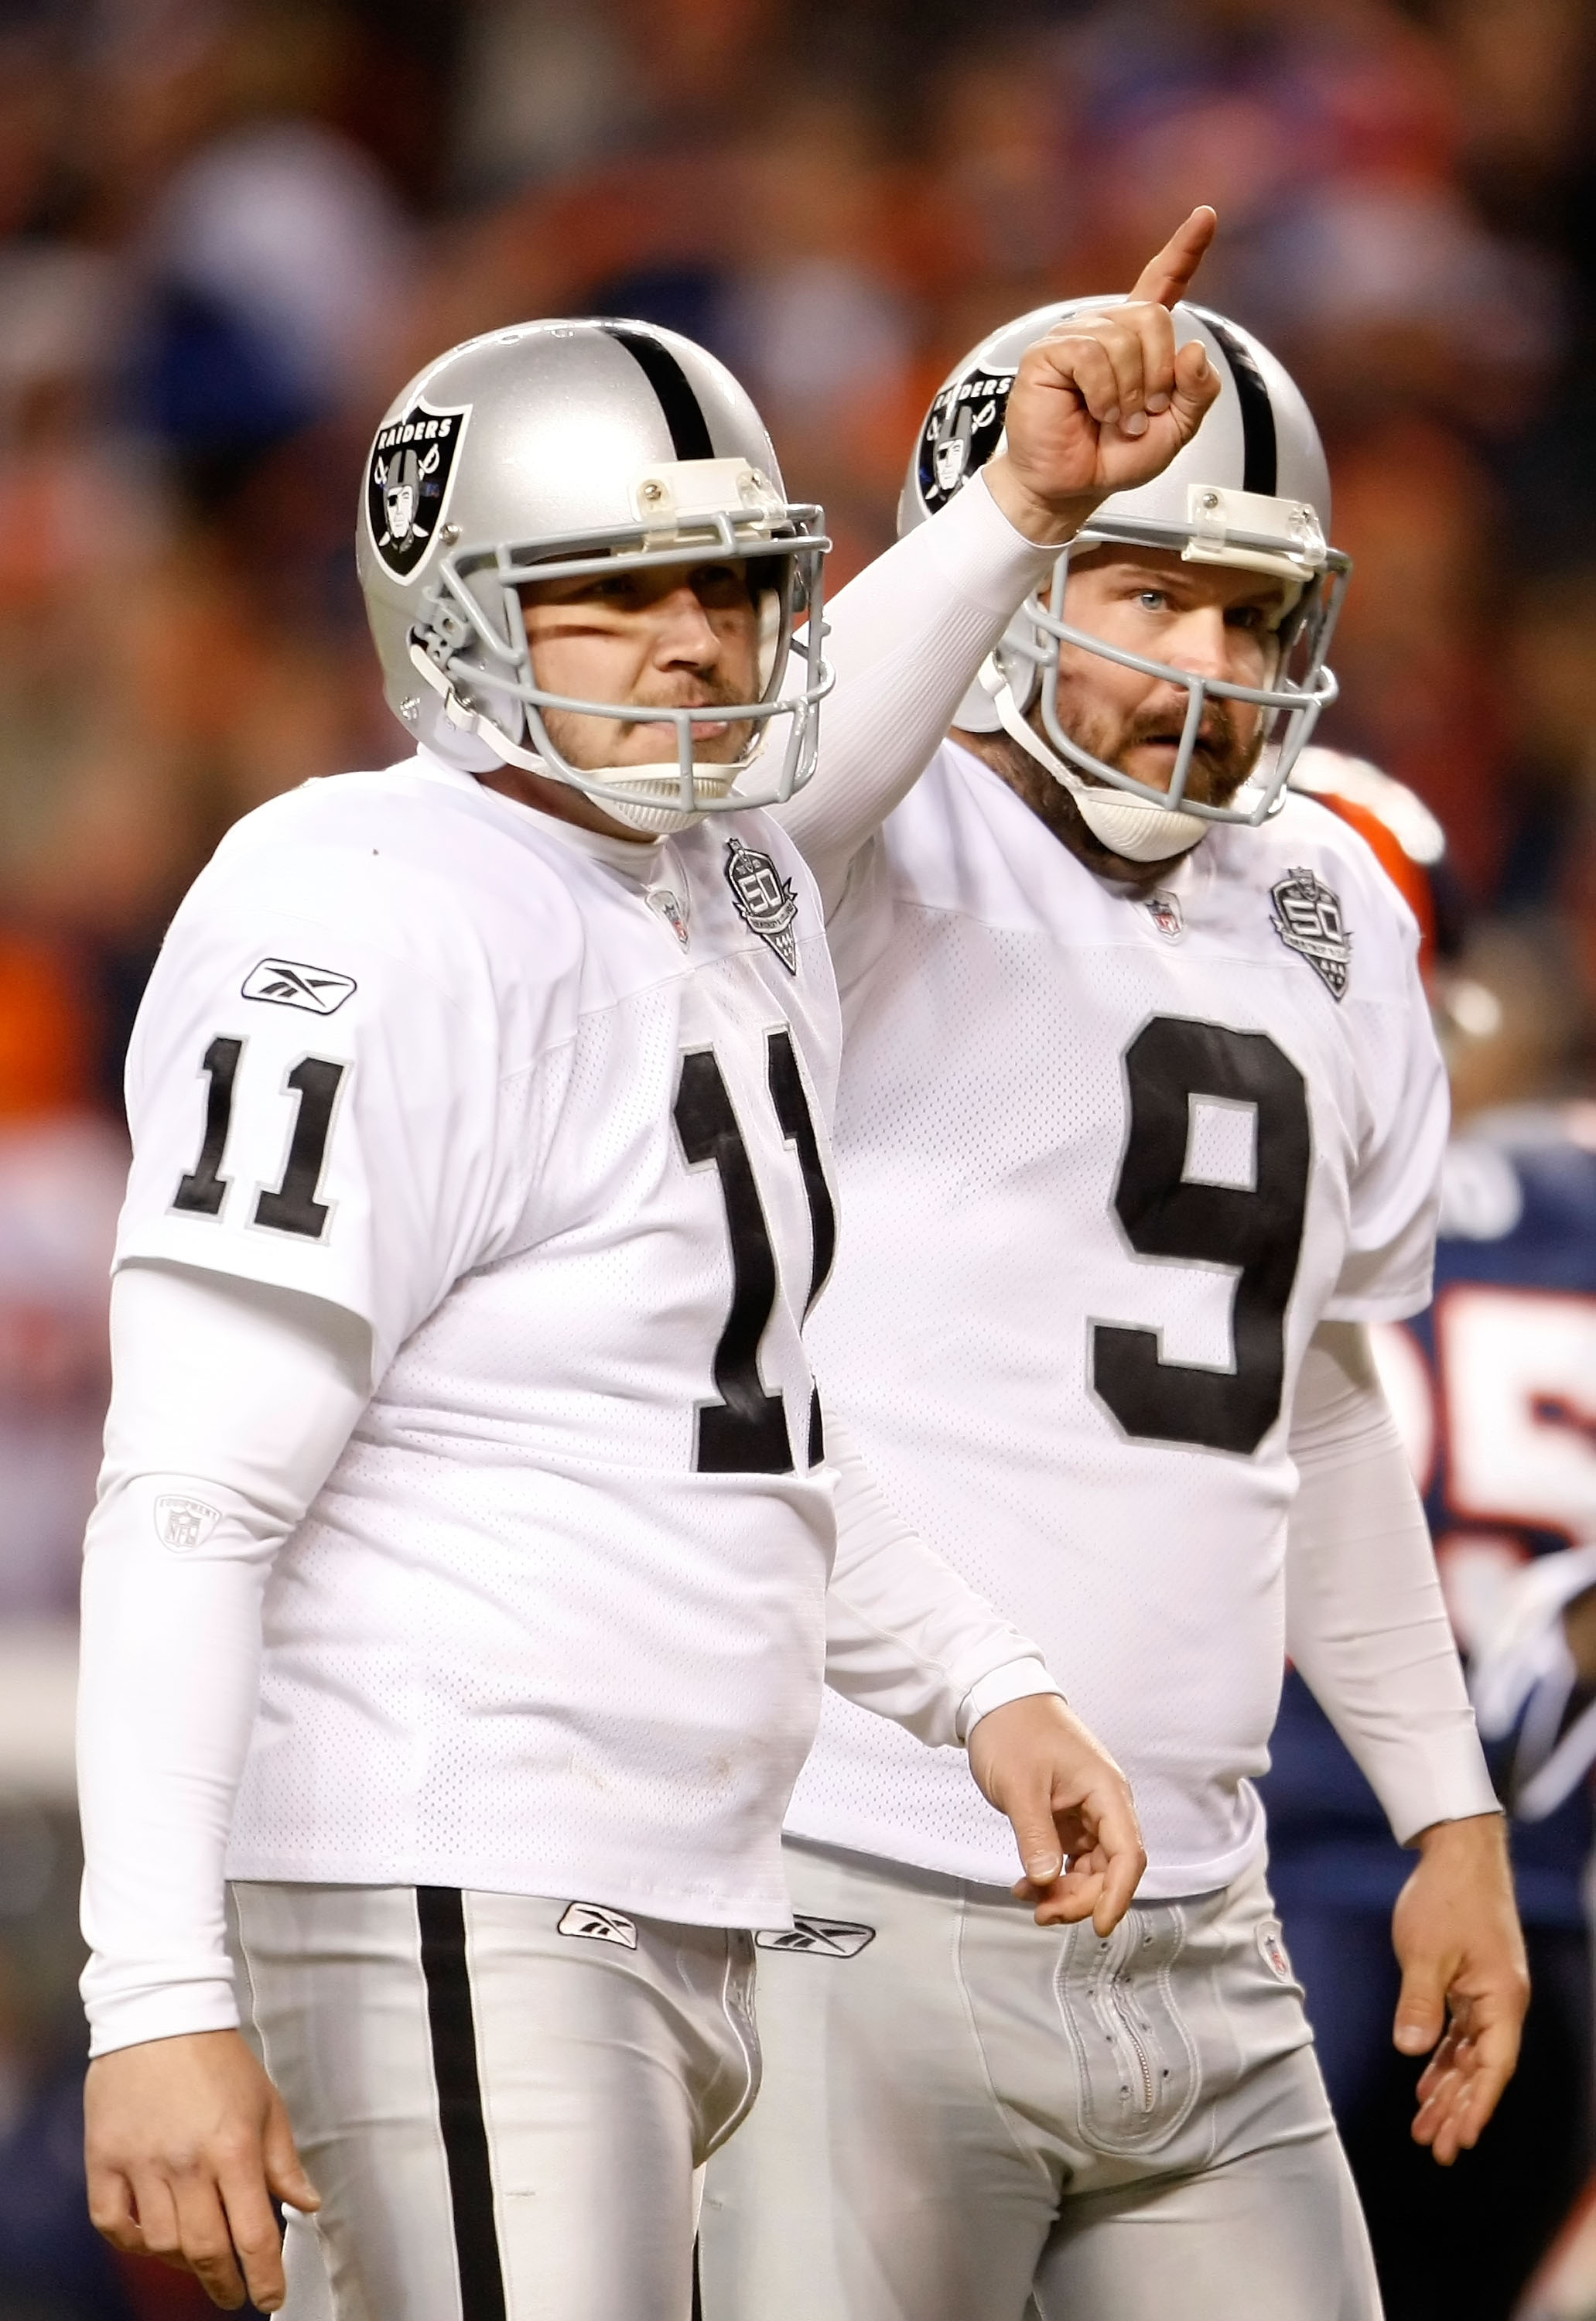 That's right, Jano. We're the #1 kicking duo in the NFL. Belive that!